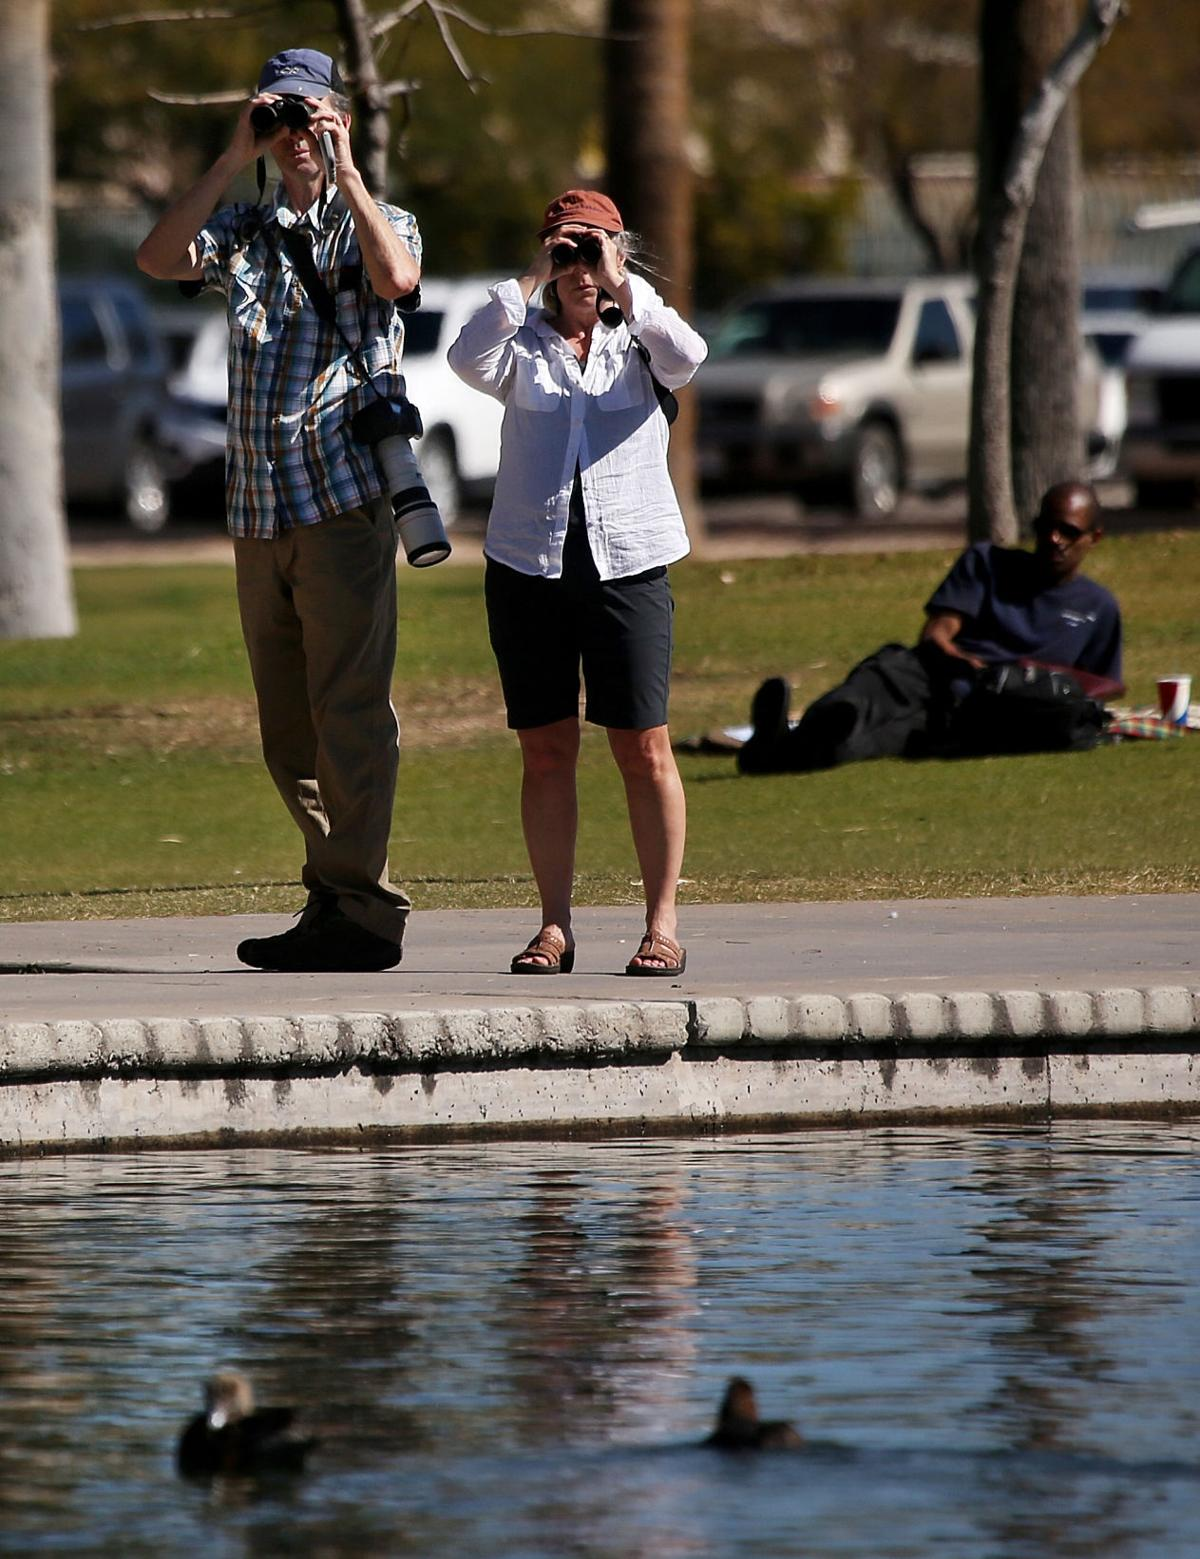 tucson u0027s winter goes down as 4th warmest on record weather